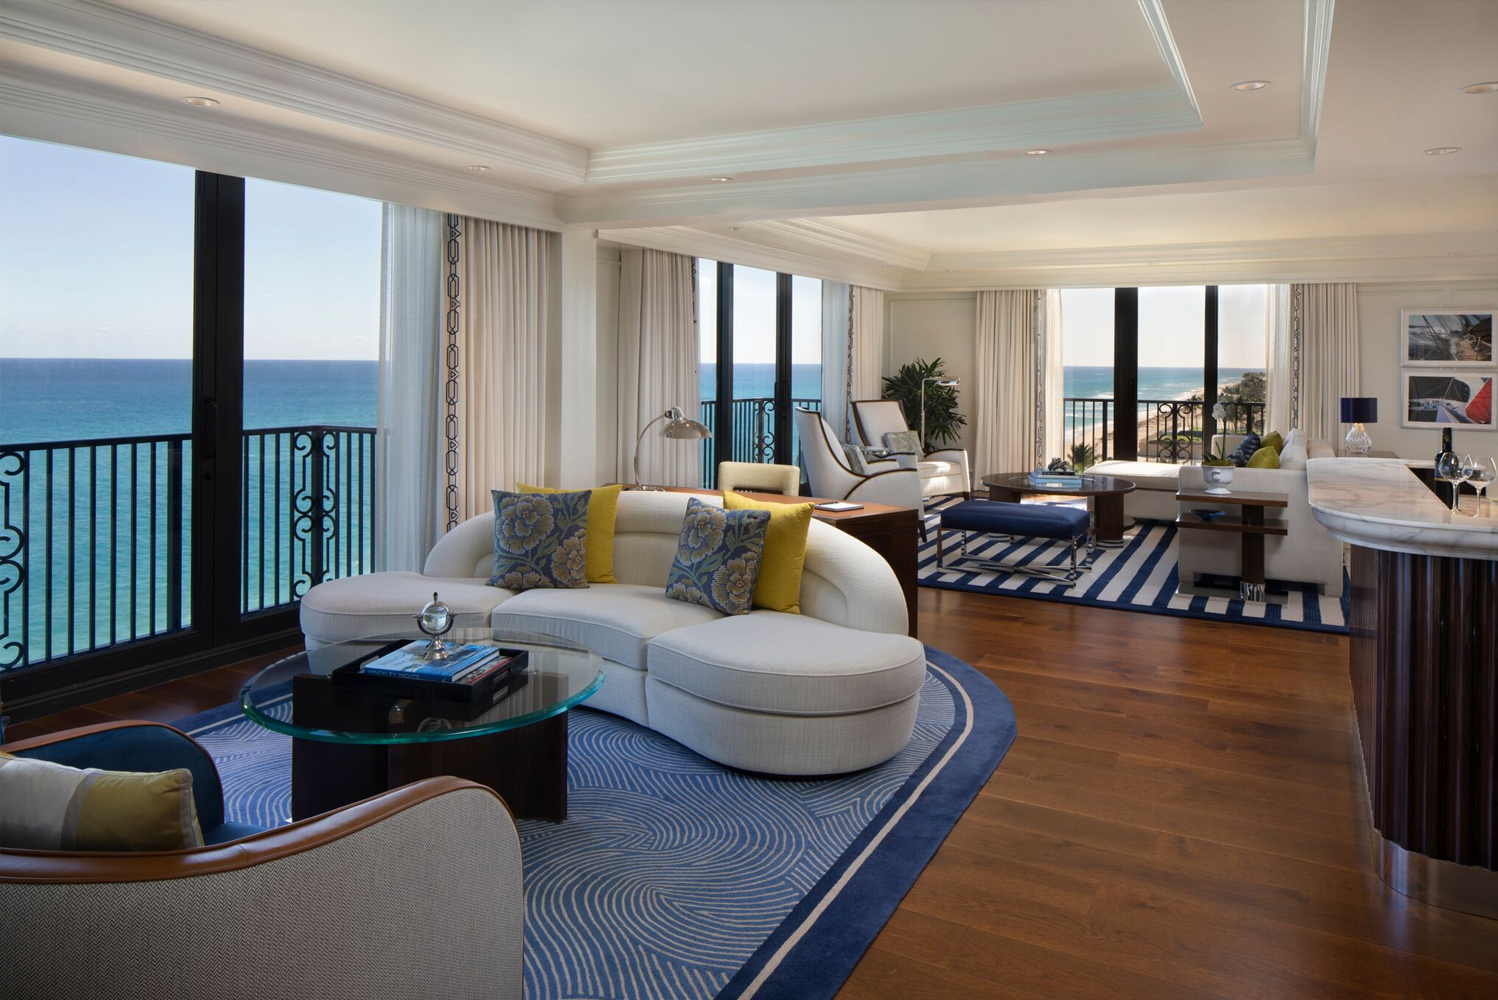 The Breakers Palm Beach unveiled renovations that saw changes made to the property's suites and the hotel's historic Ocean Course.